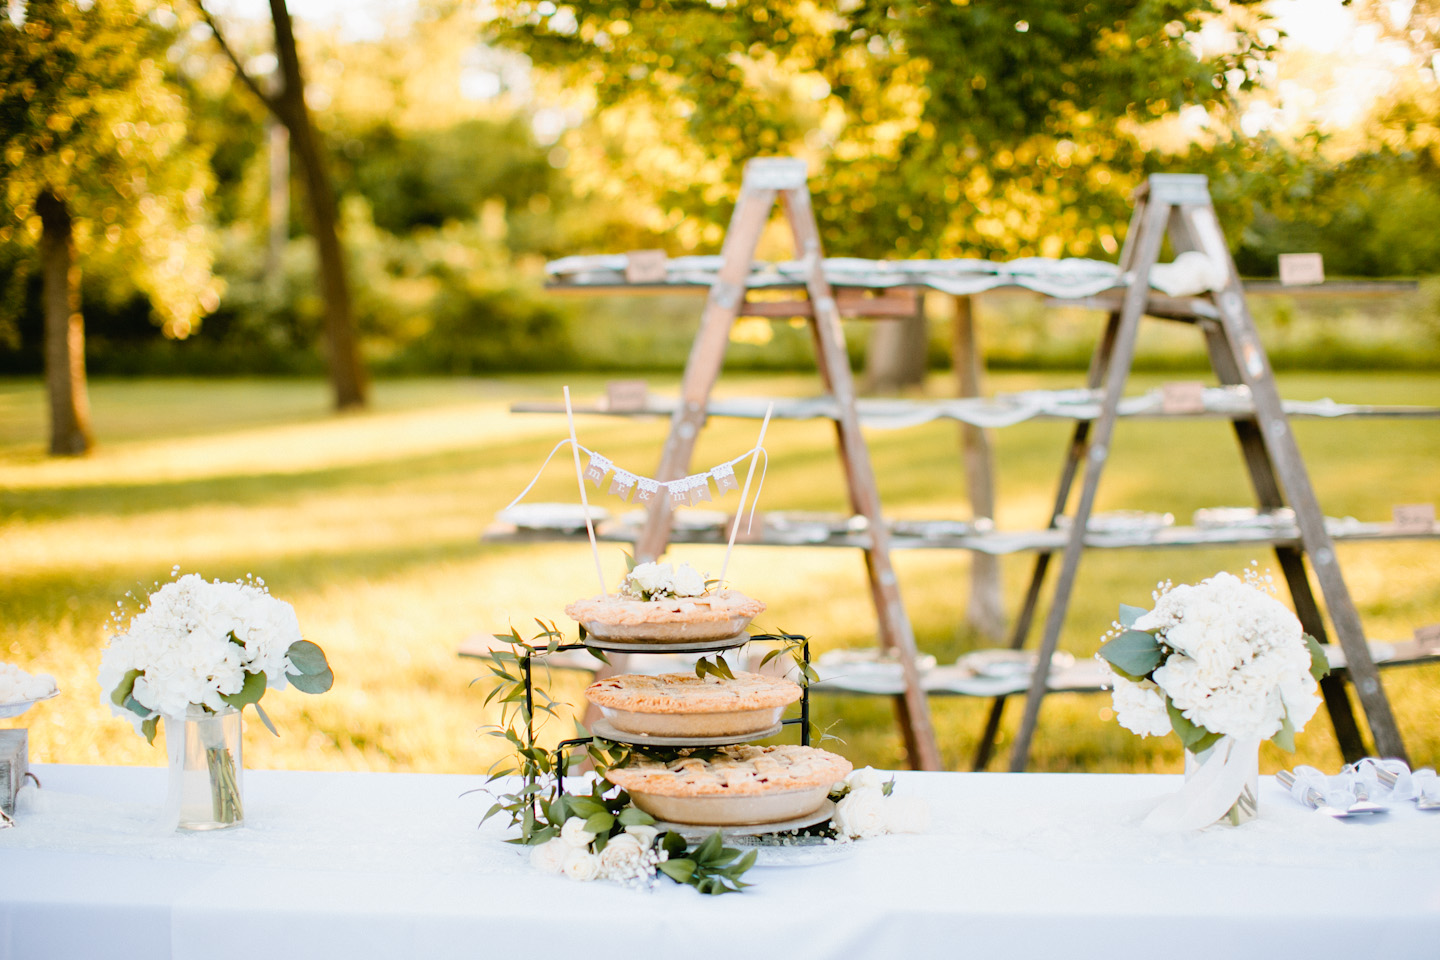 gorgeous pie stand at outdoor wedding reception in summer